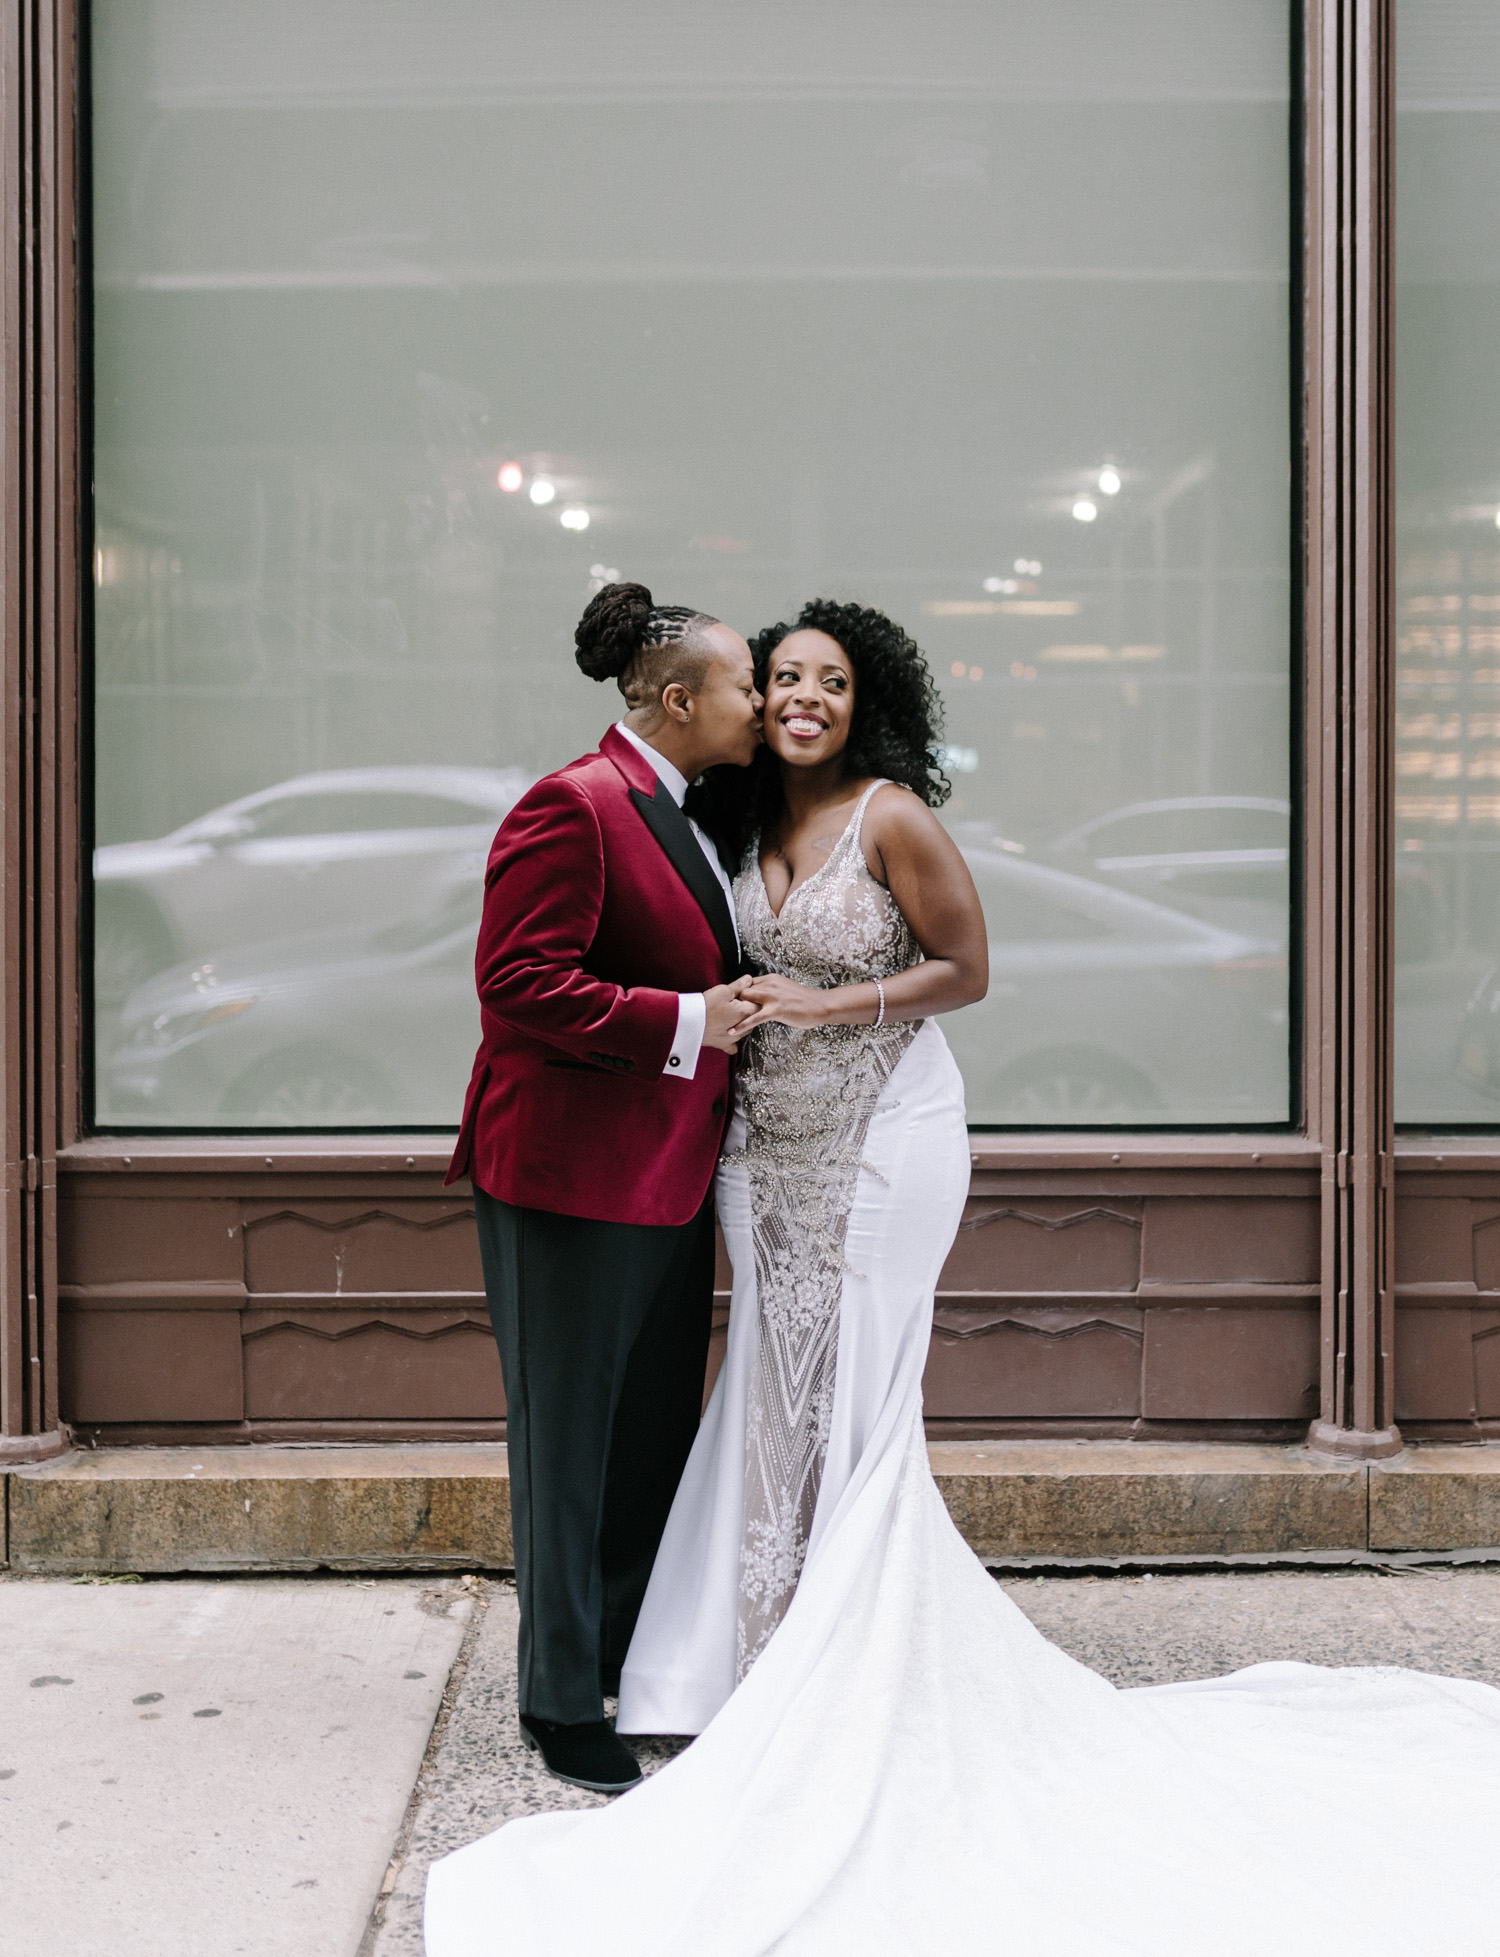 A black lesbian wedding couple embrace in Brooklyn, New York before their Brooklyn Winery wedding